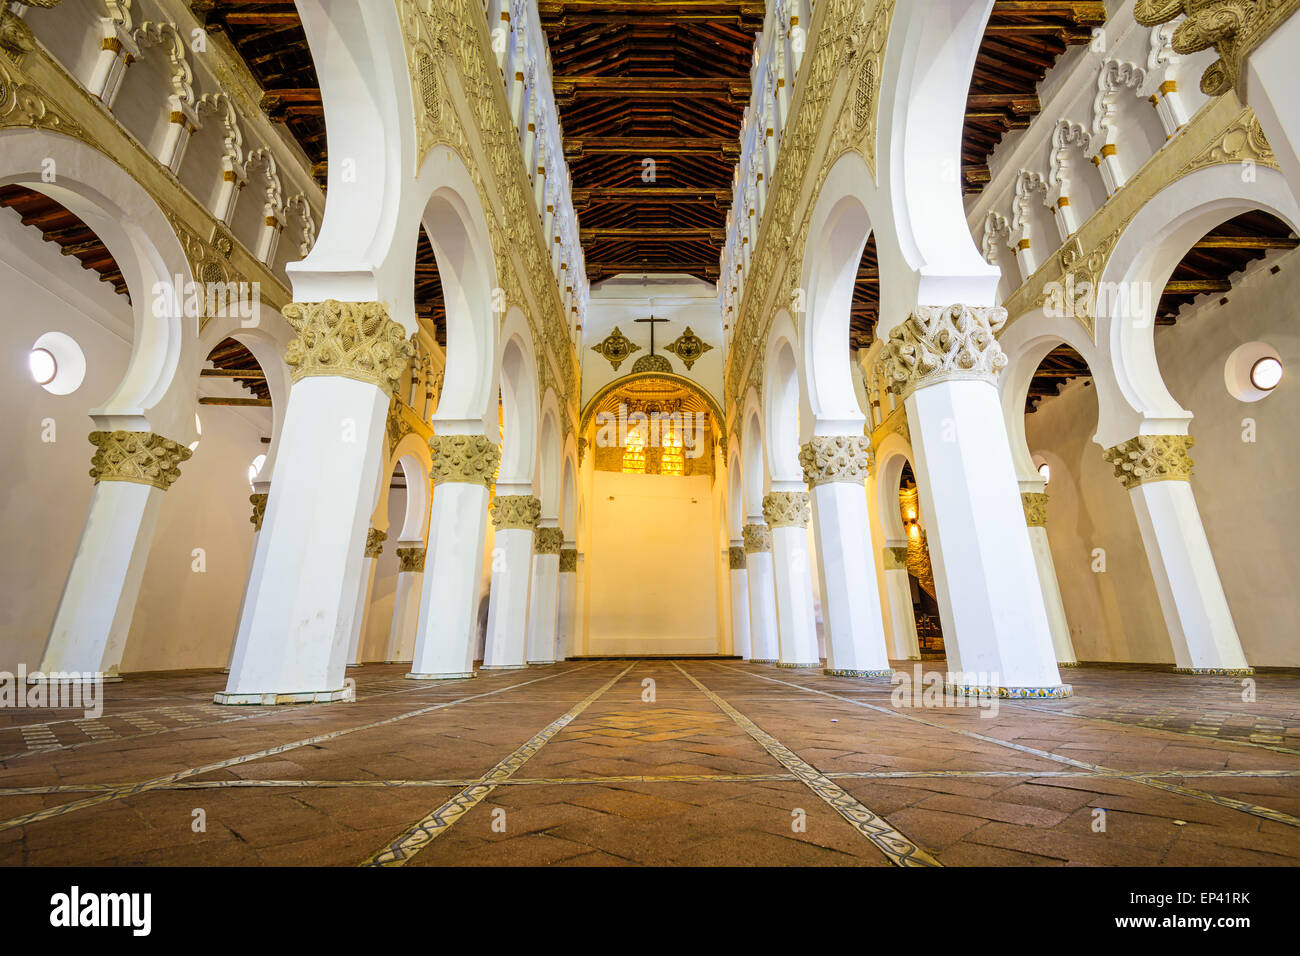 Santa Maria La Blanca Church in Toledo, Spain, oiginally known as the Ibn Shushan Synagogue. - Stock Image